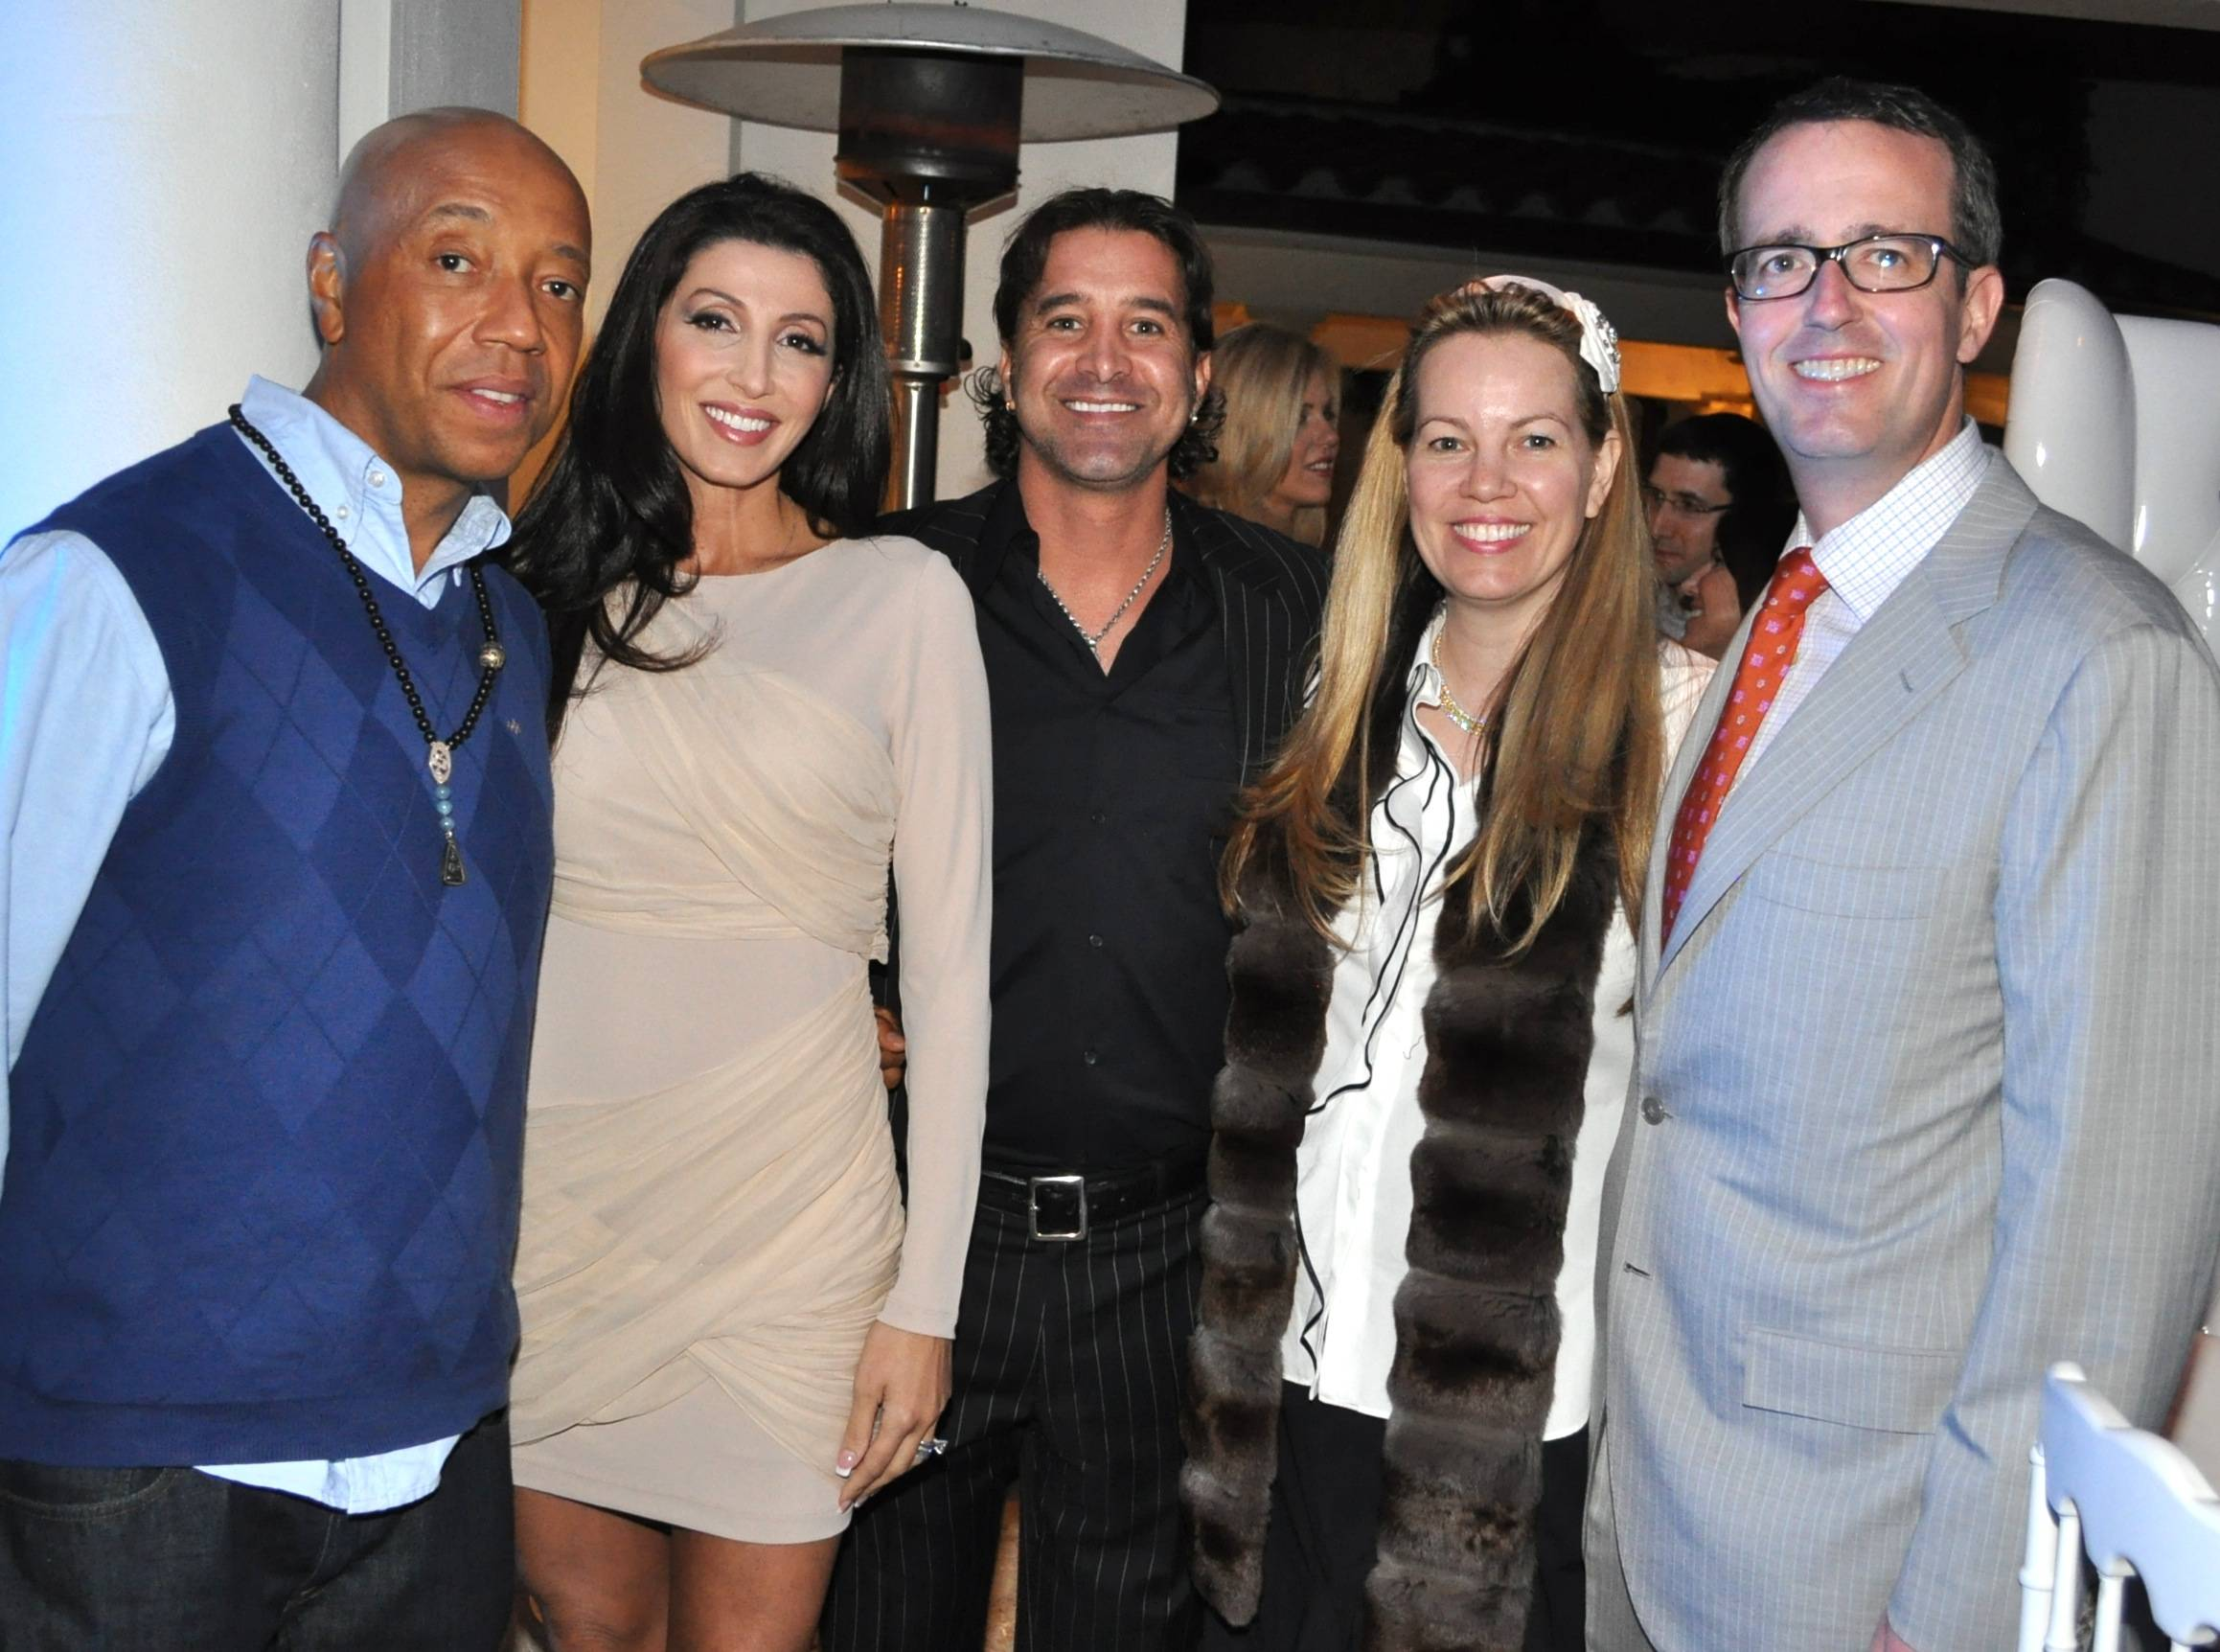 05 Russell Simmons, Jaclyn & Scott Stapp, with Co-Hosts Allison & Chip Brady